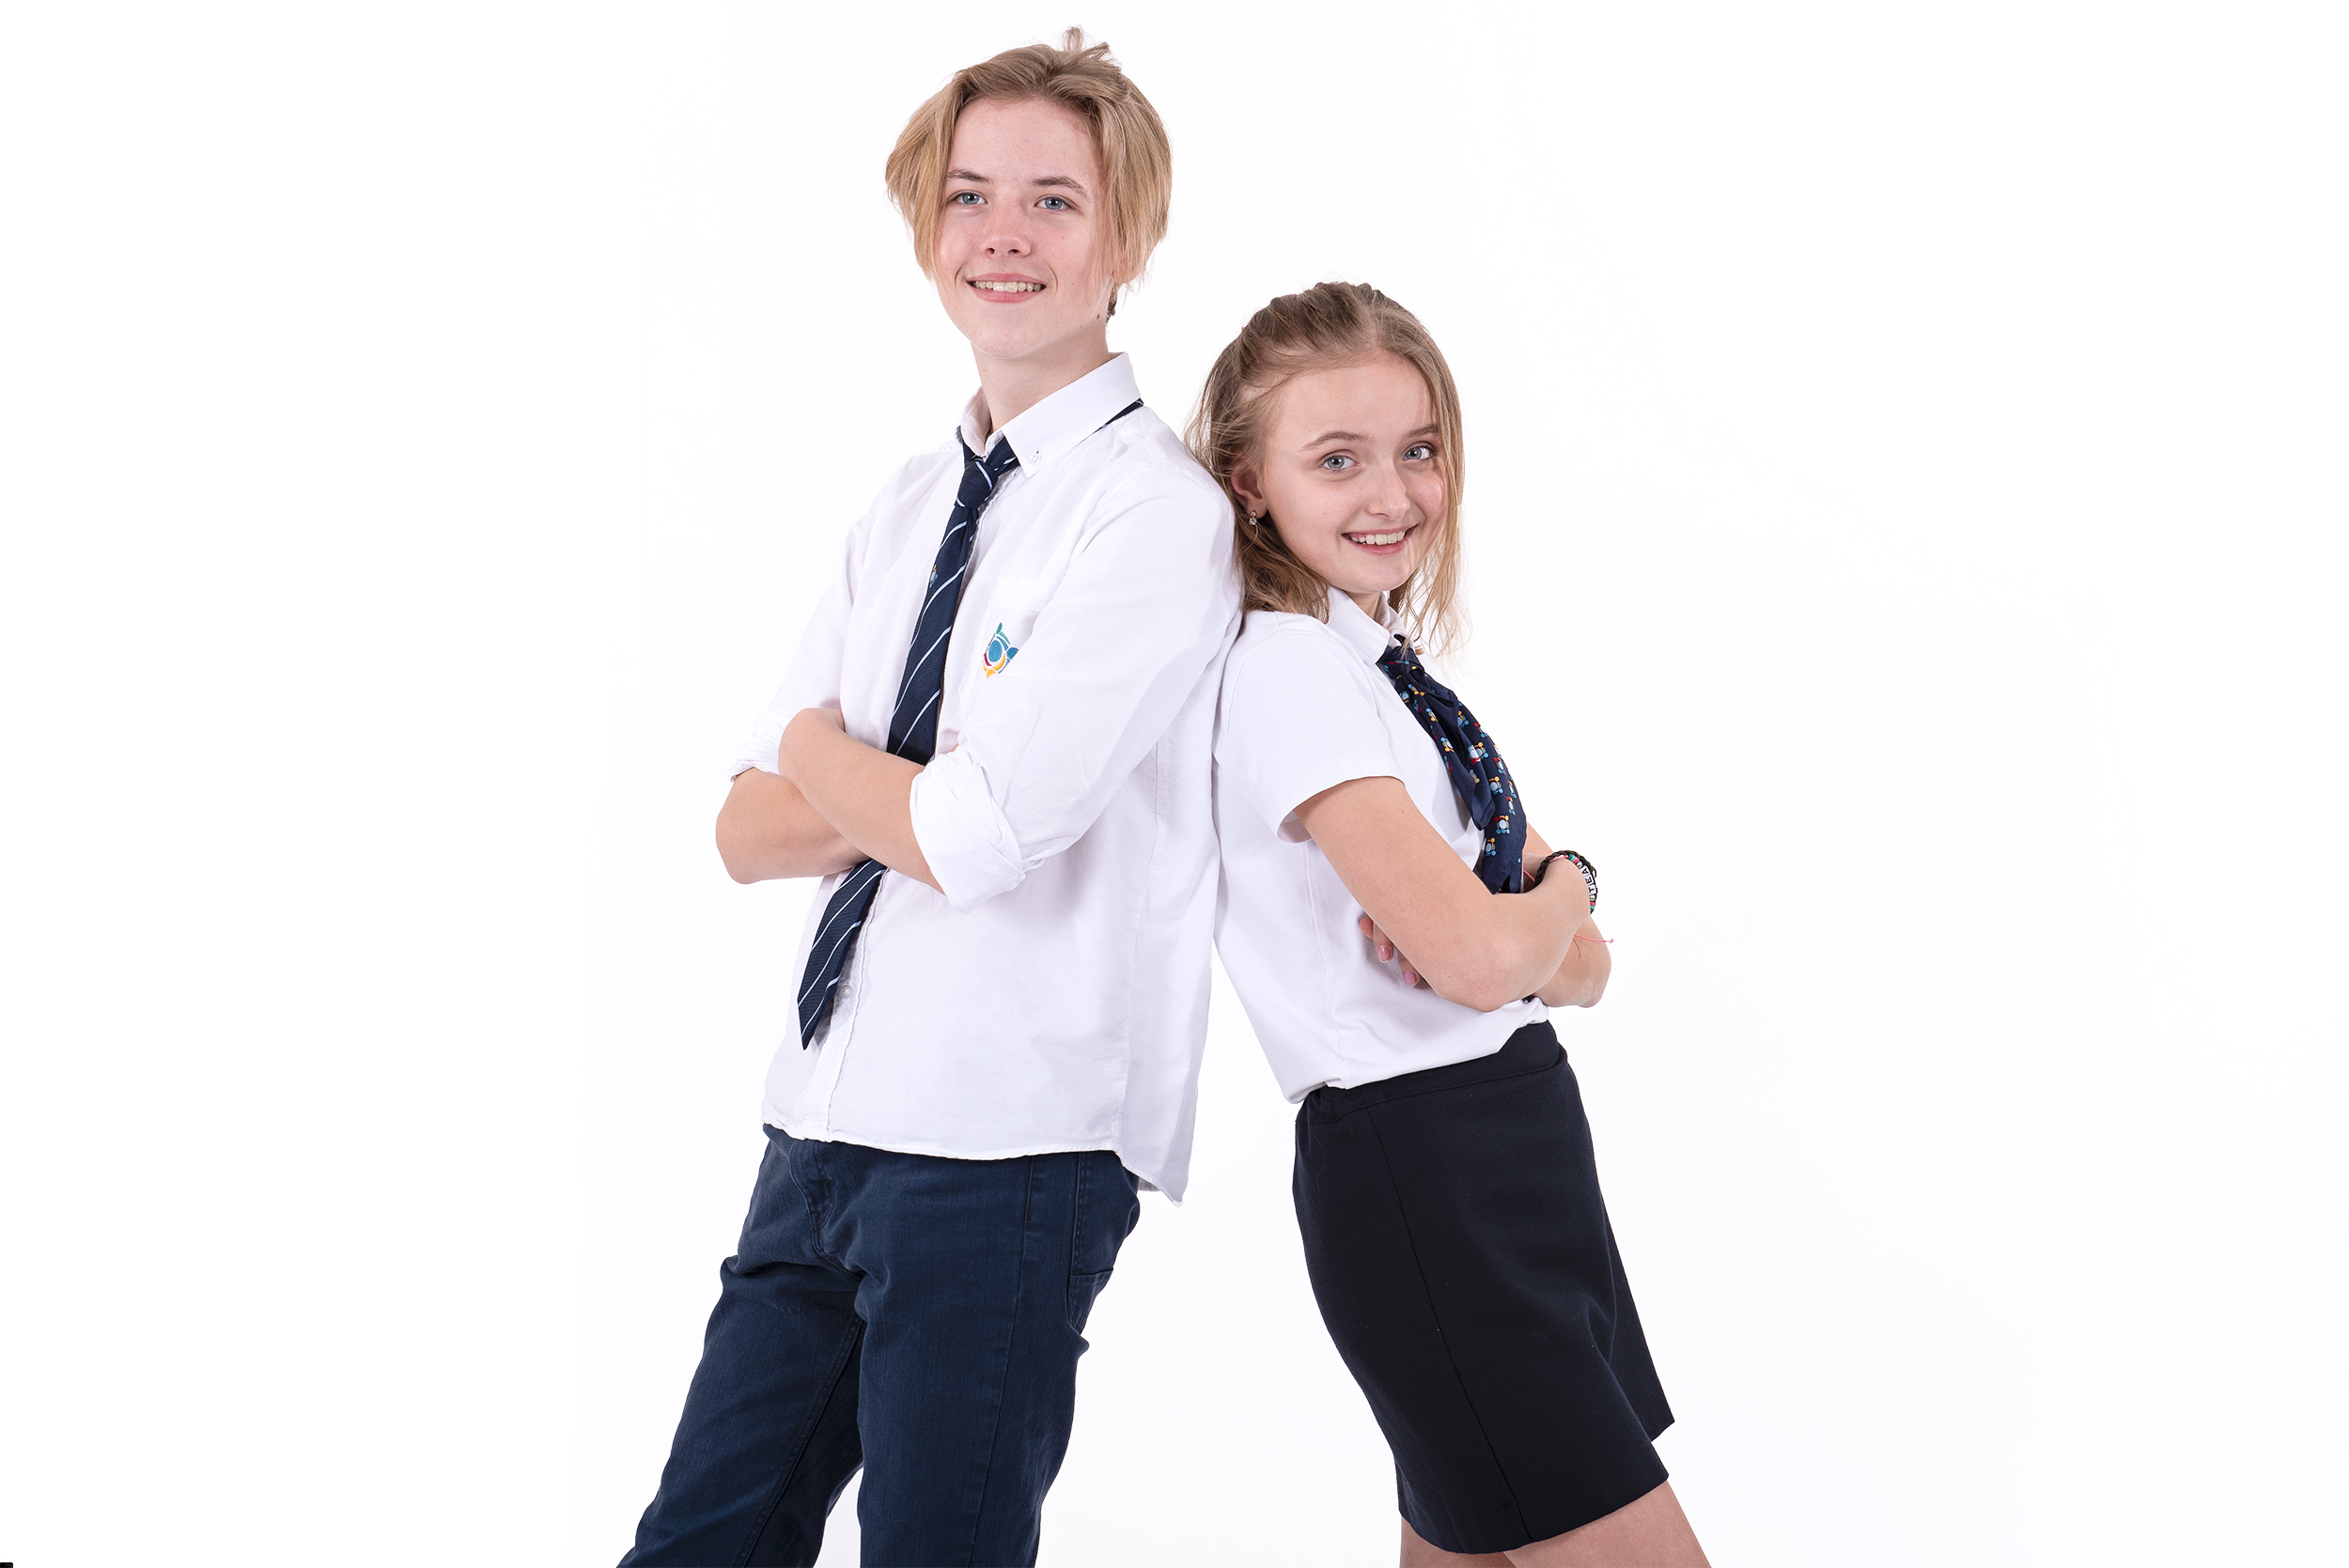 Teenagers photography sgs studios